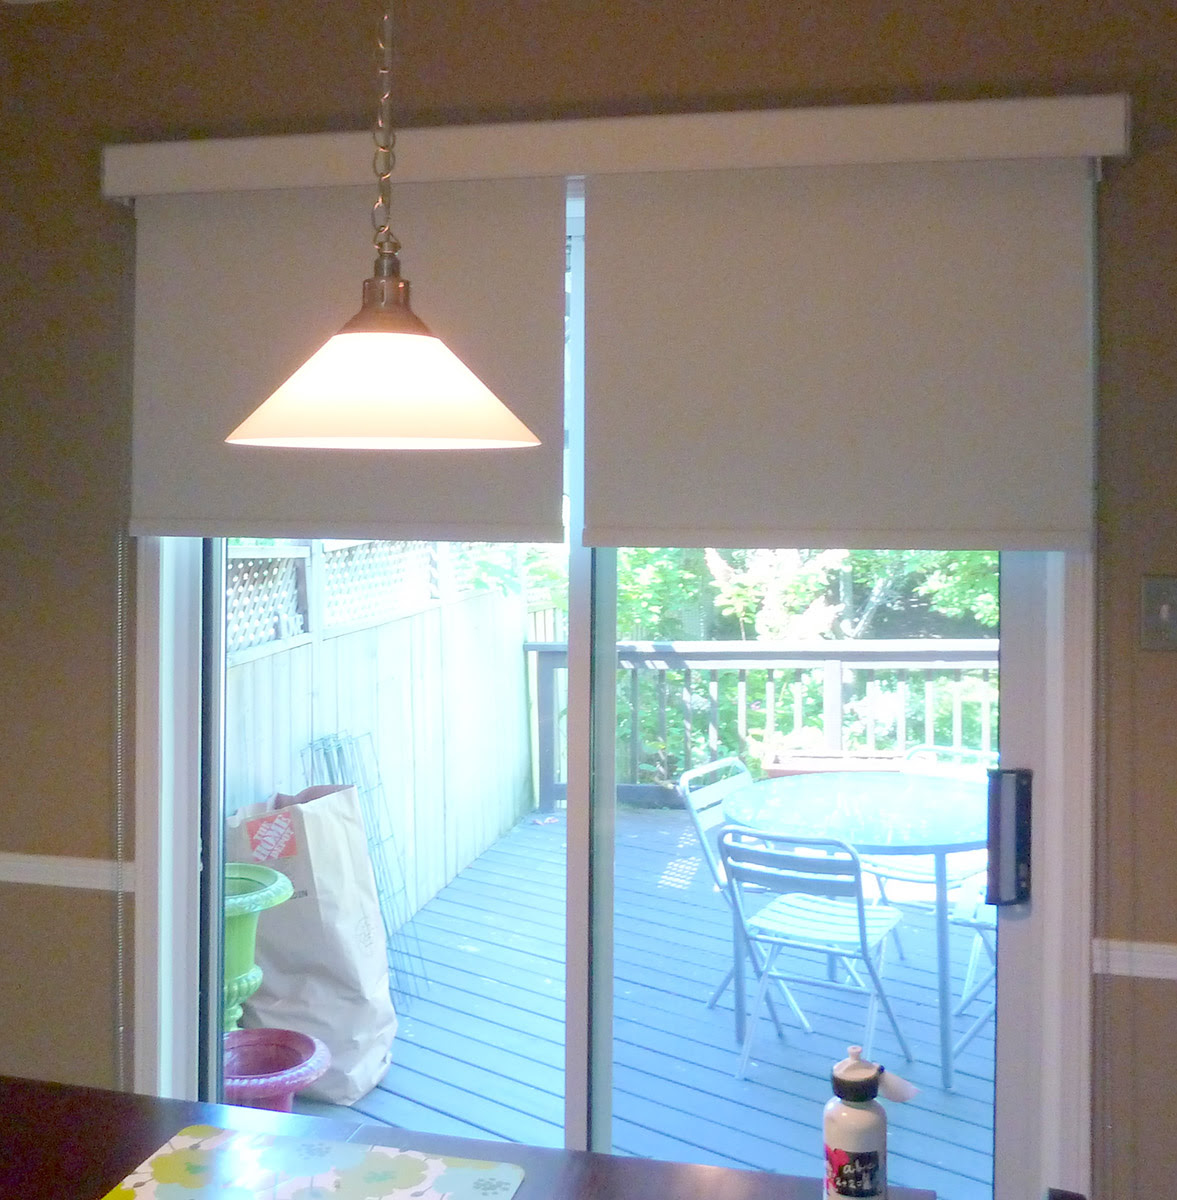 The Options of Window Coverings for Sliding Glass Door ...